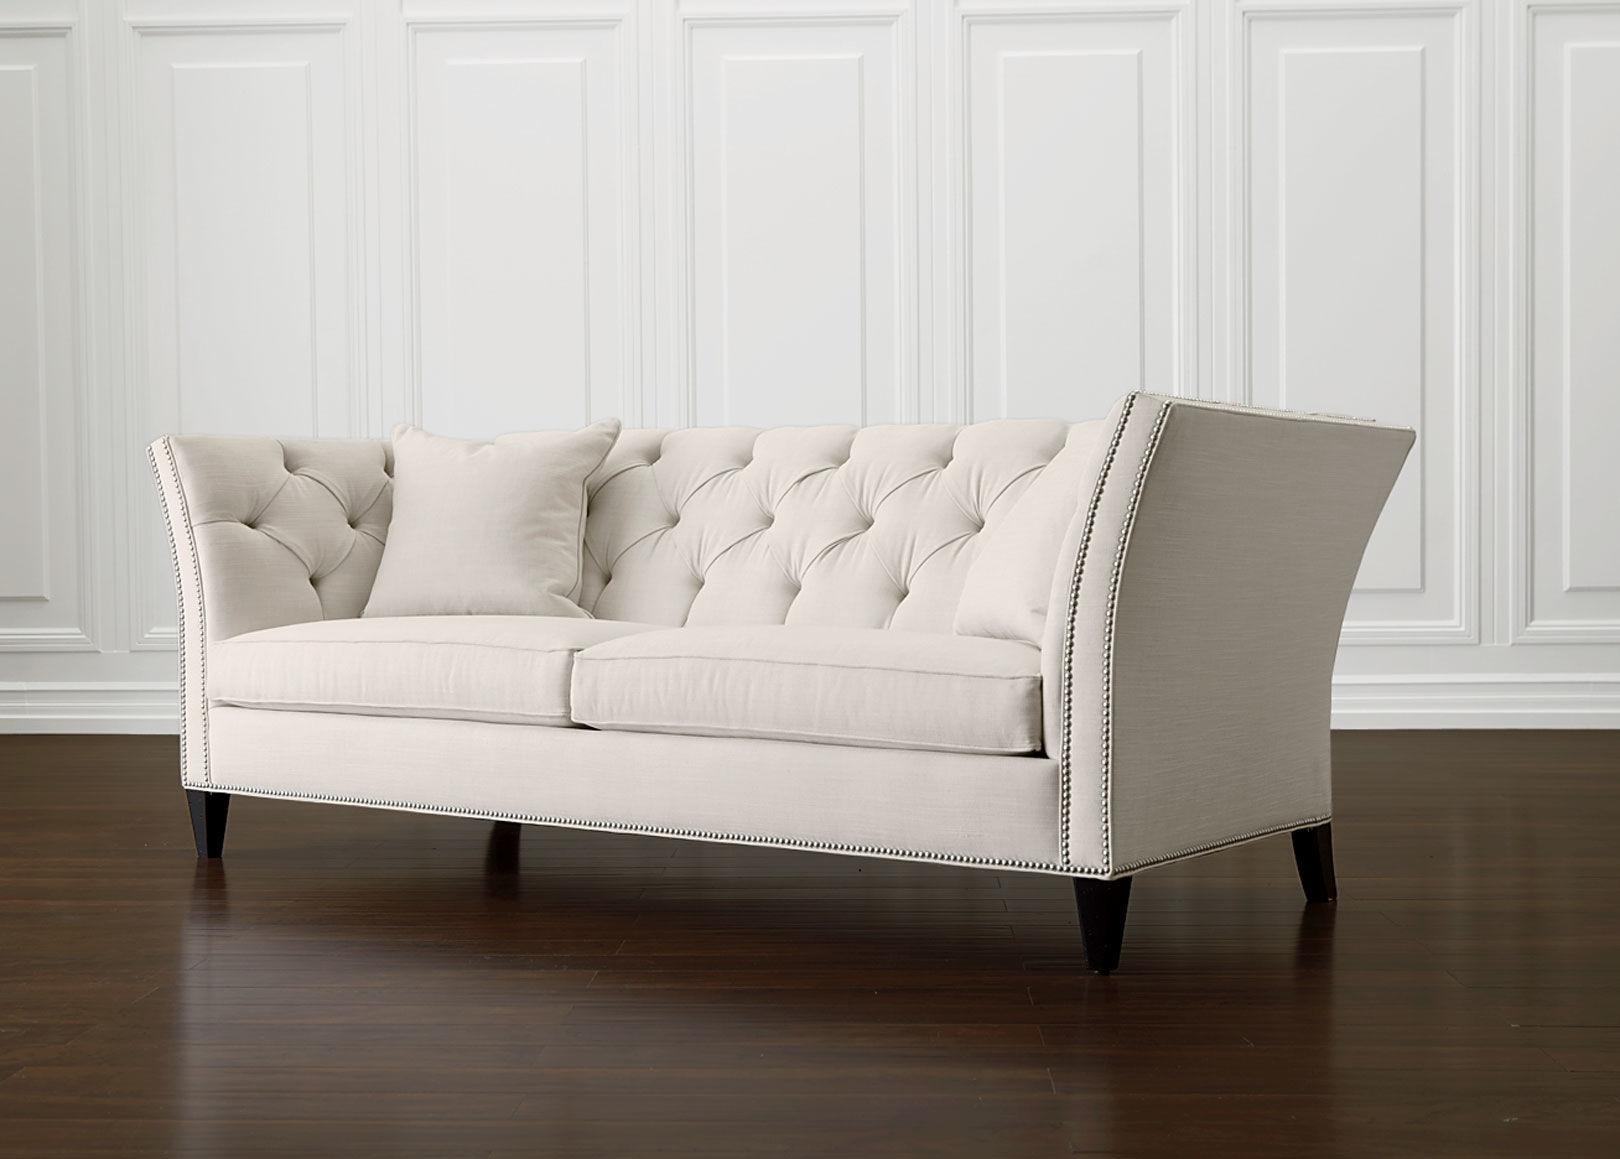 Best Ethan Allen Sleeper Sofas | Homesfeed Intended For Ethan Allen Sofas And Chairs (View 15 of 20)